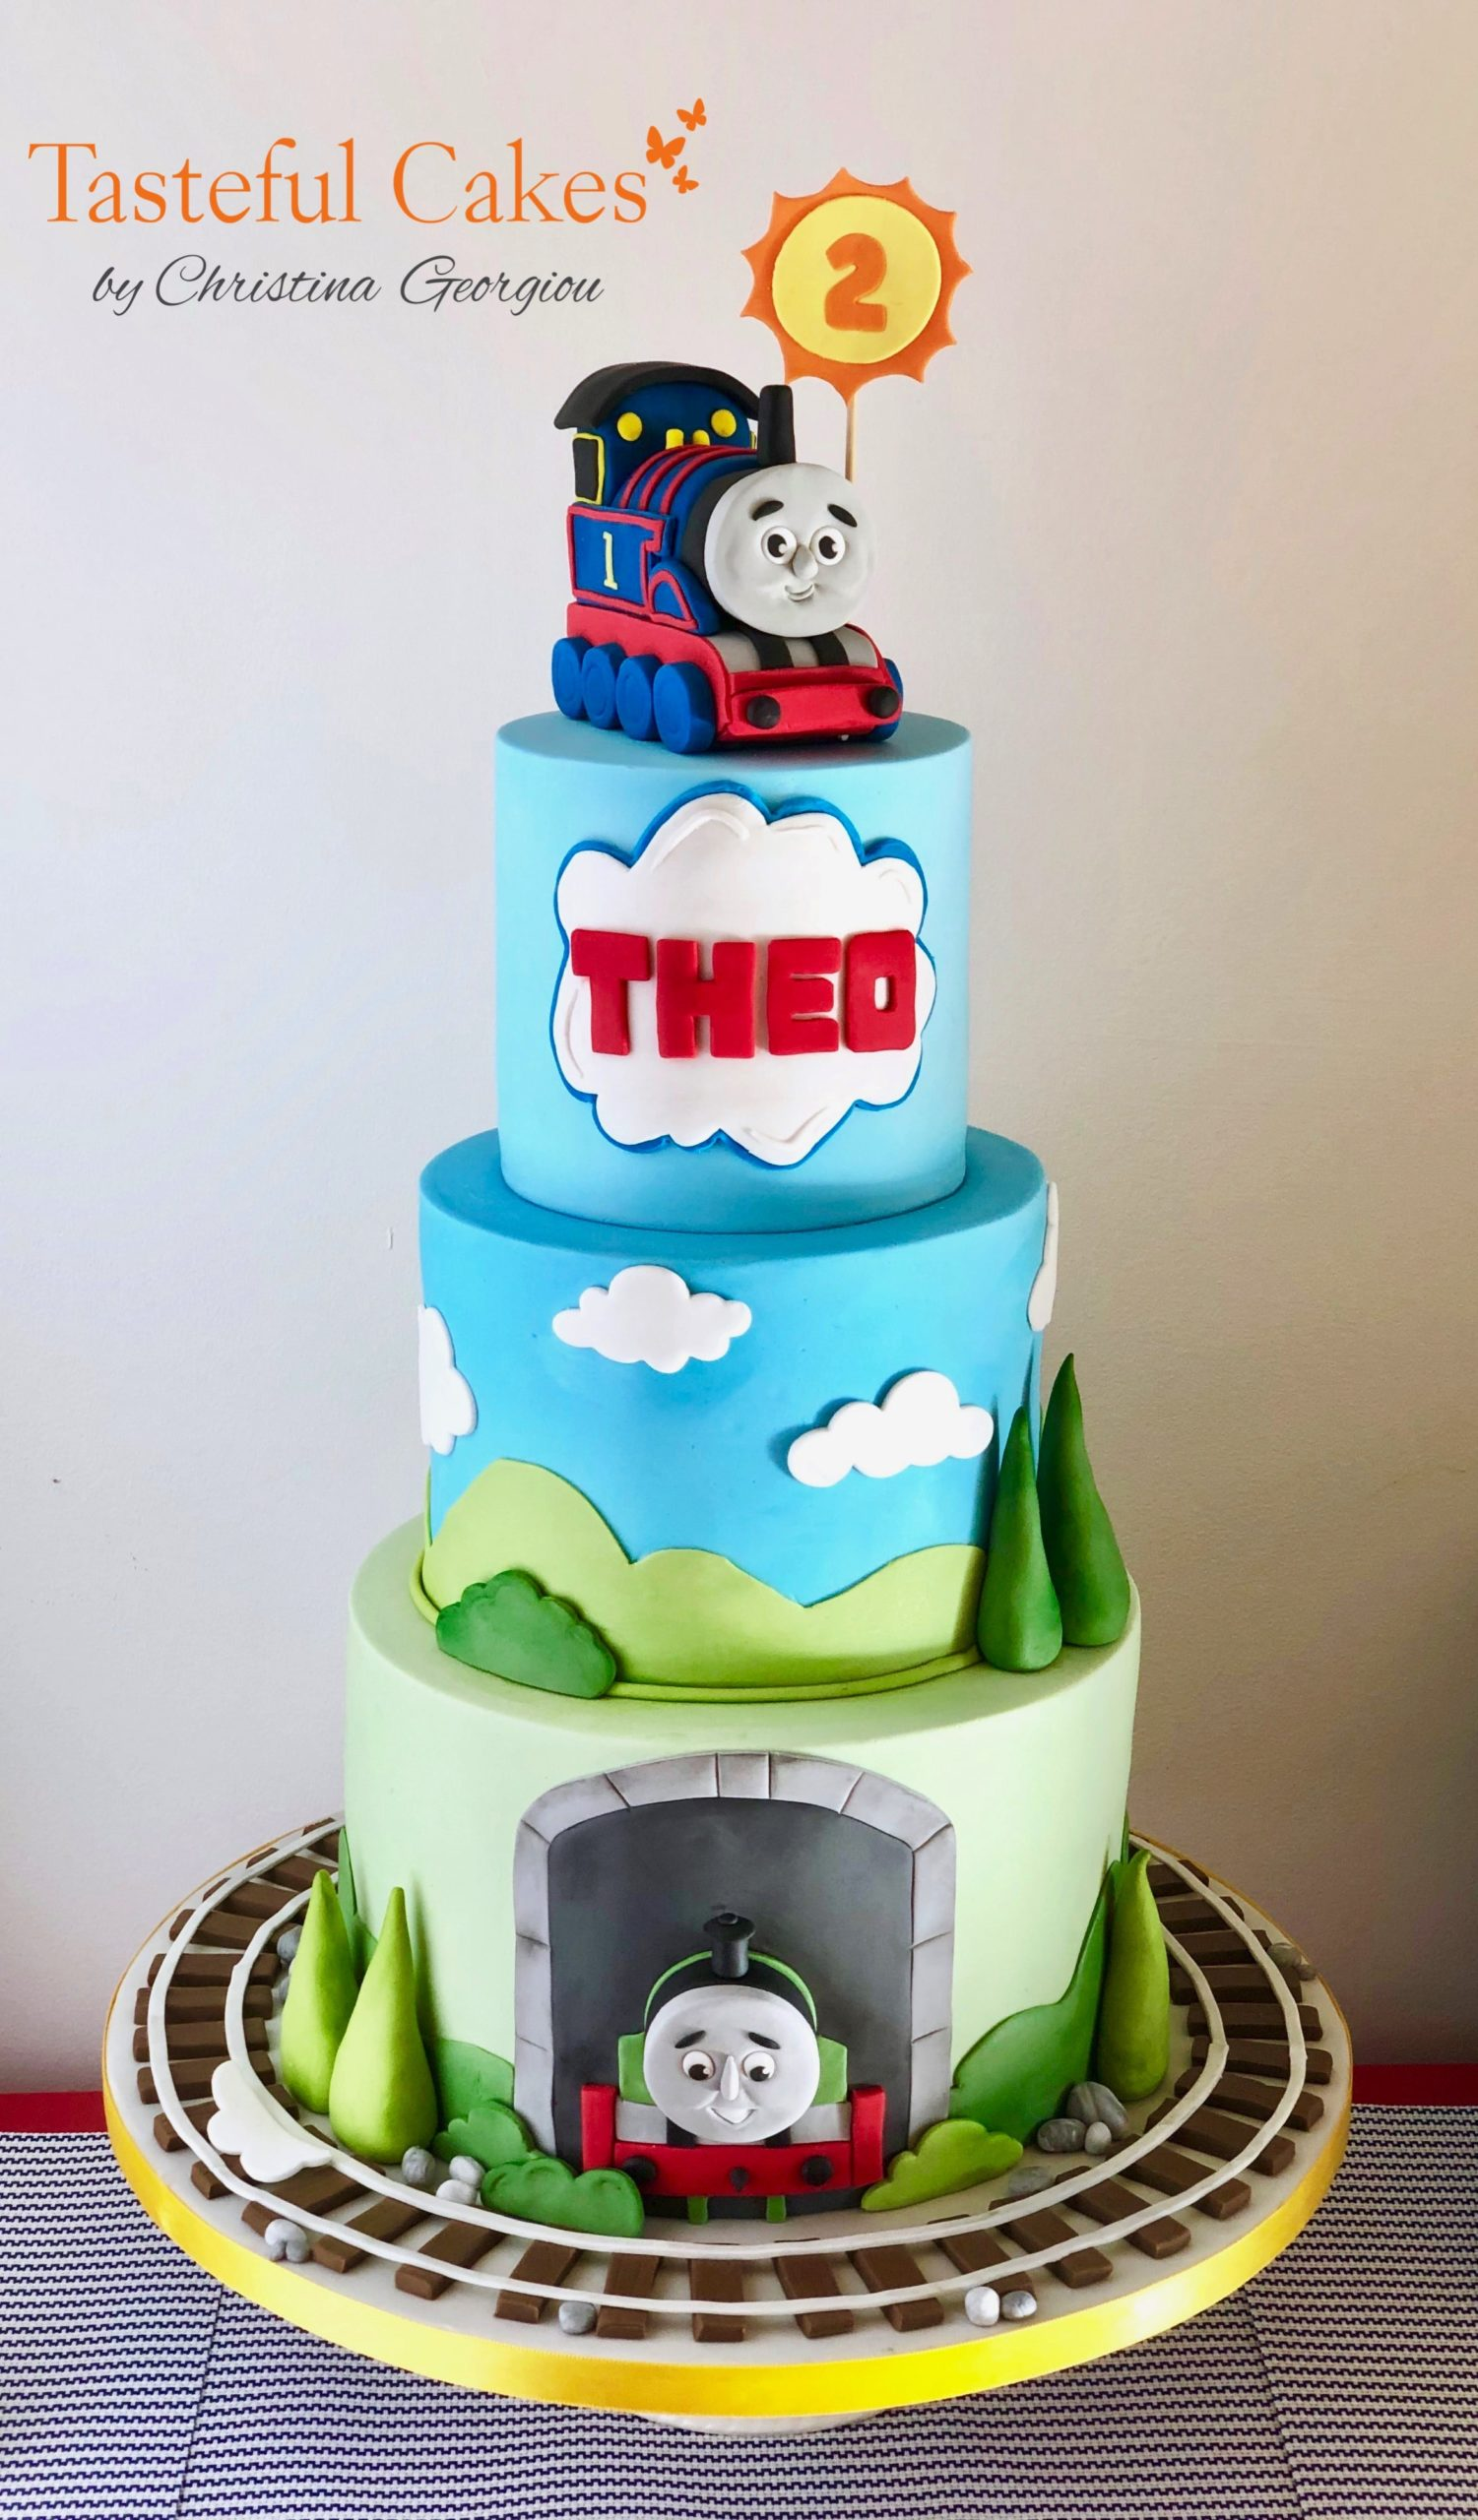 Astonishing Thomas The Tank Engine Birthday Cake Tasteful Cakes By Funny Birthday Cards Online Overcheapnameinfo